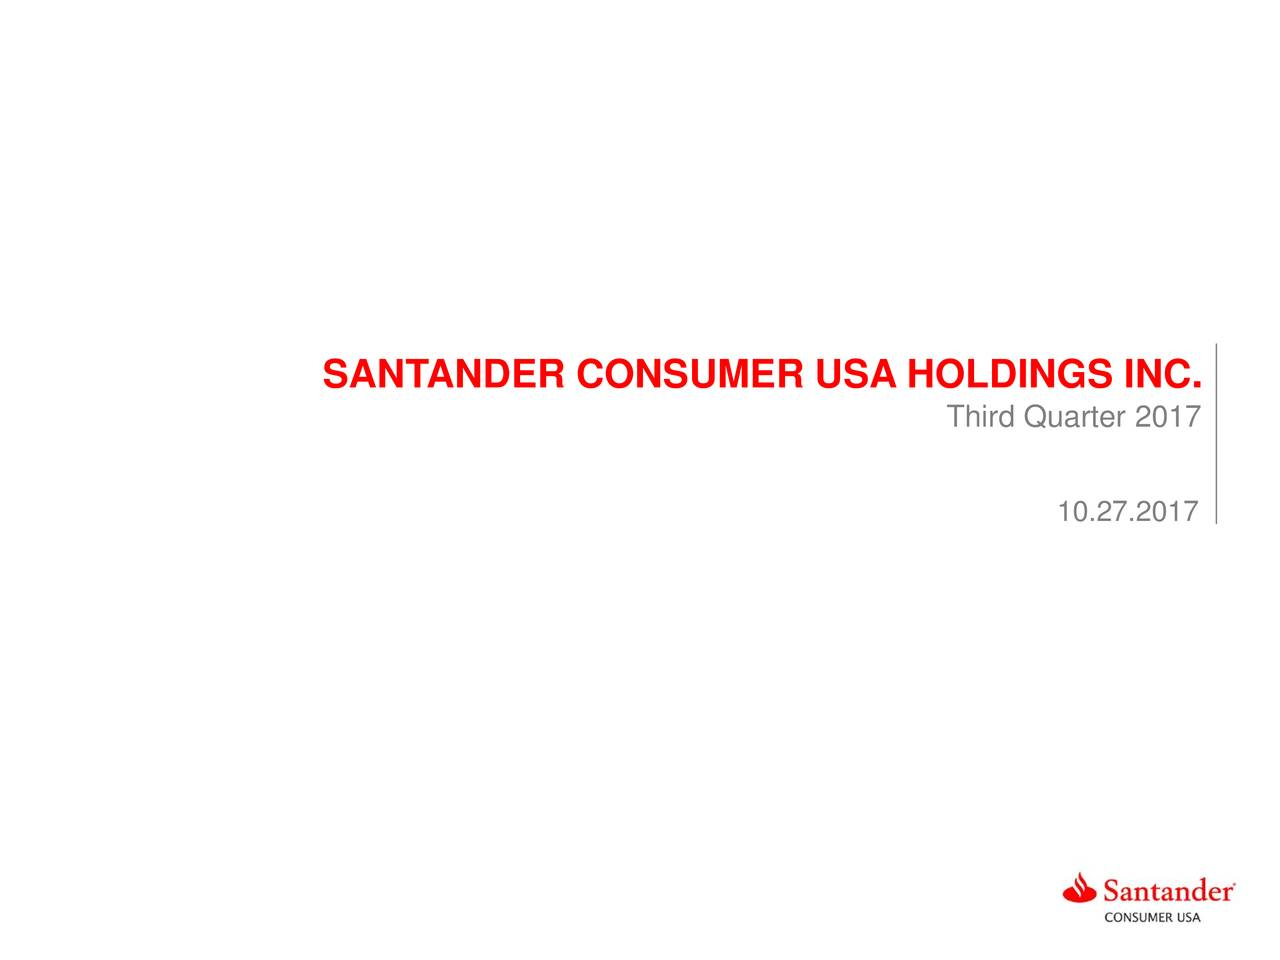 santander chat rooms For general inquiries about any of santander bank's solutions and services,   allow receipt of emails from custhelpcom, santanderus and santanderbankcom.